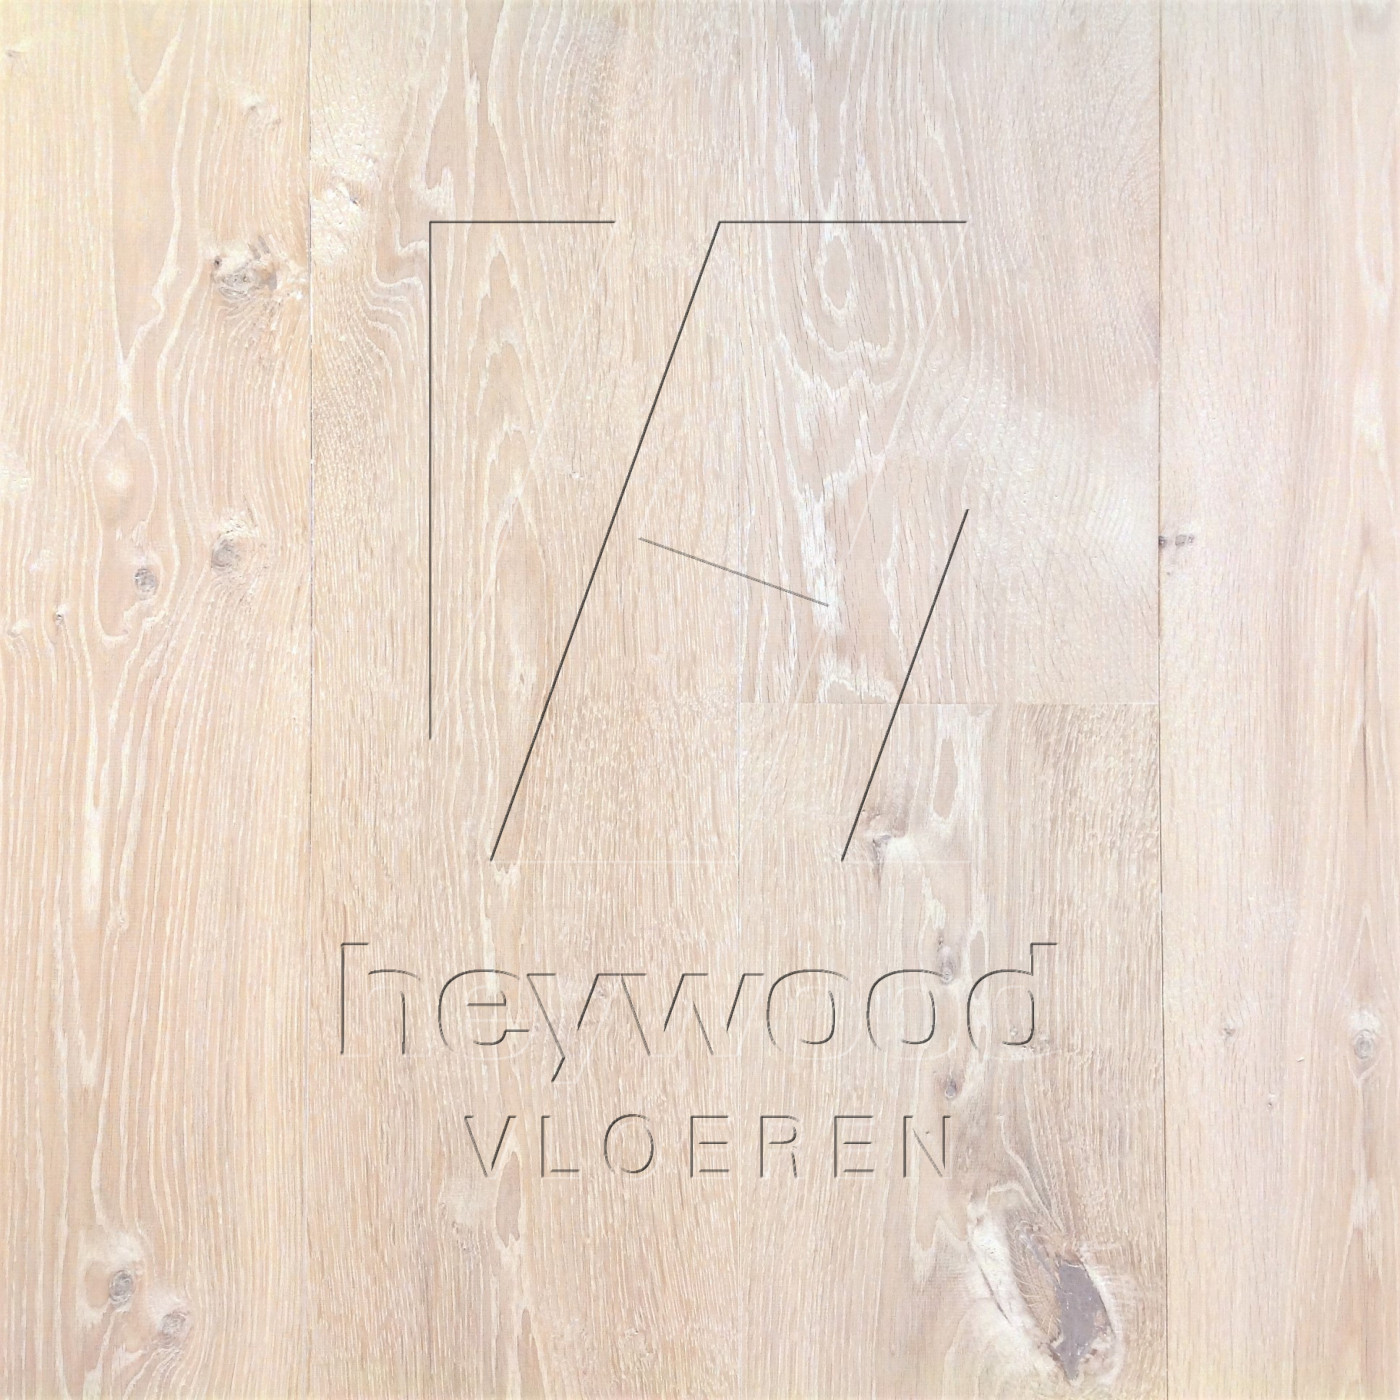 Plank Vancouver in European Oak Character of Bespoke Wooden Floors